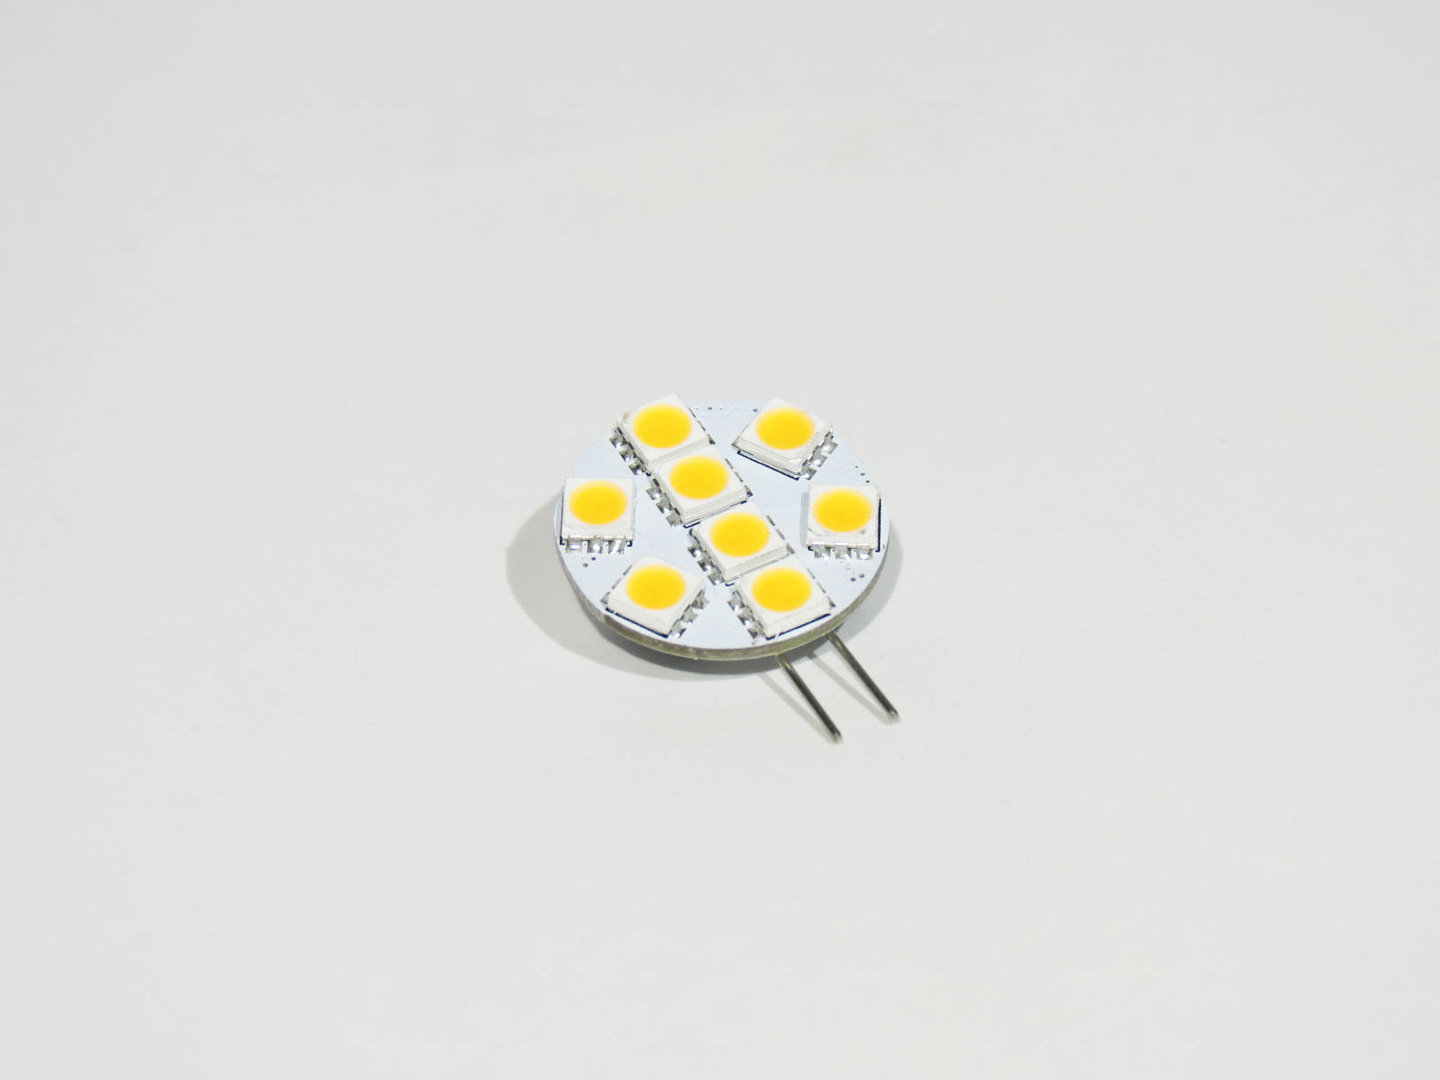 G4 H 8 LED SMD 10-30V warmweiß